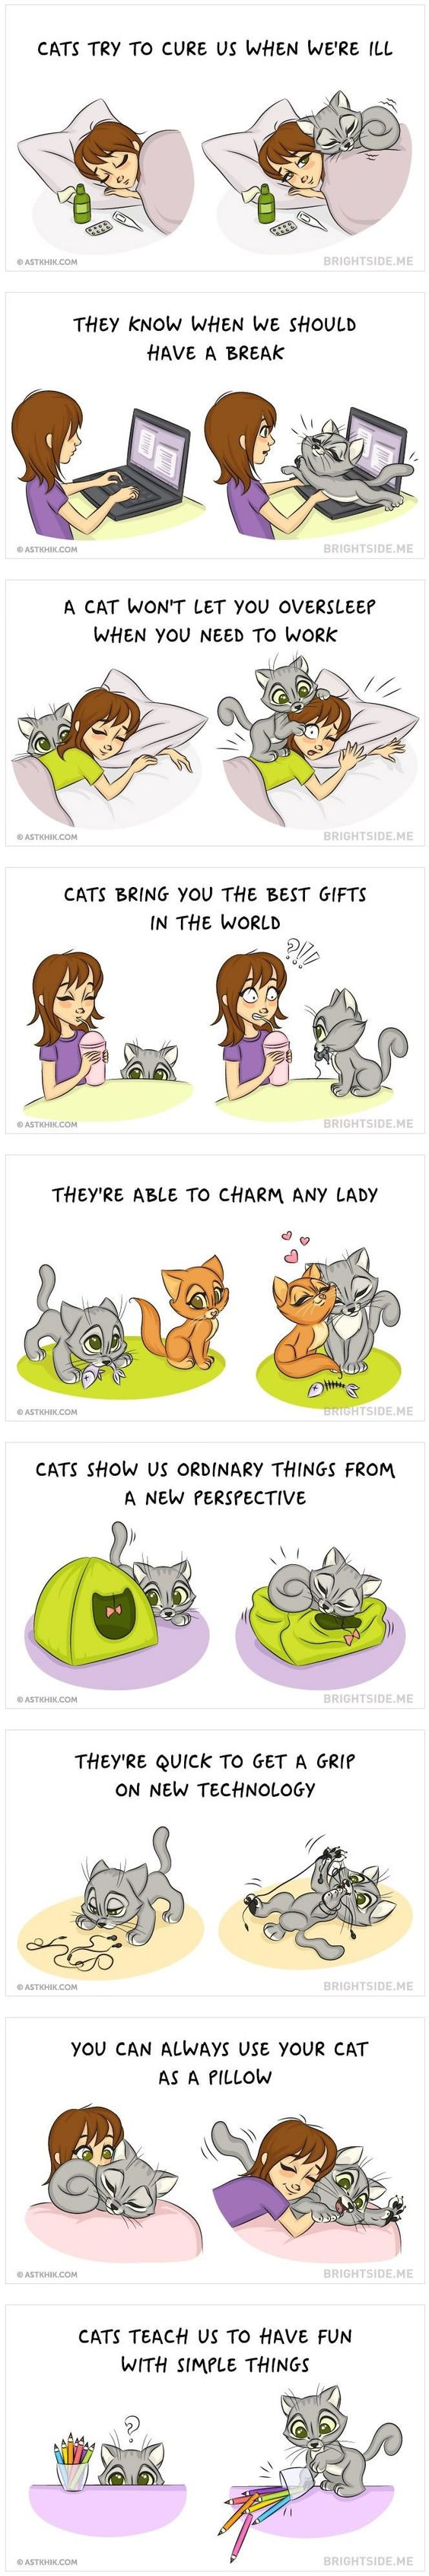 Cats are simply the best! and here are 9 reasons why everyone needs a cat in their life. Credits: ASTKHIK: